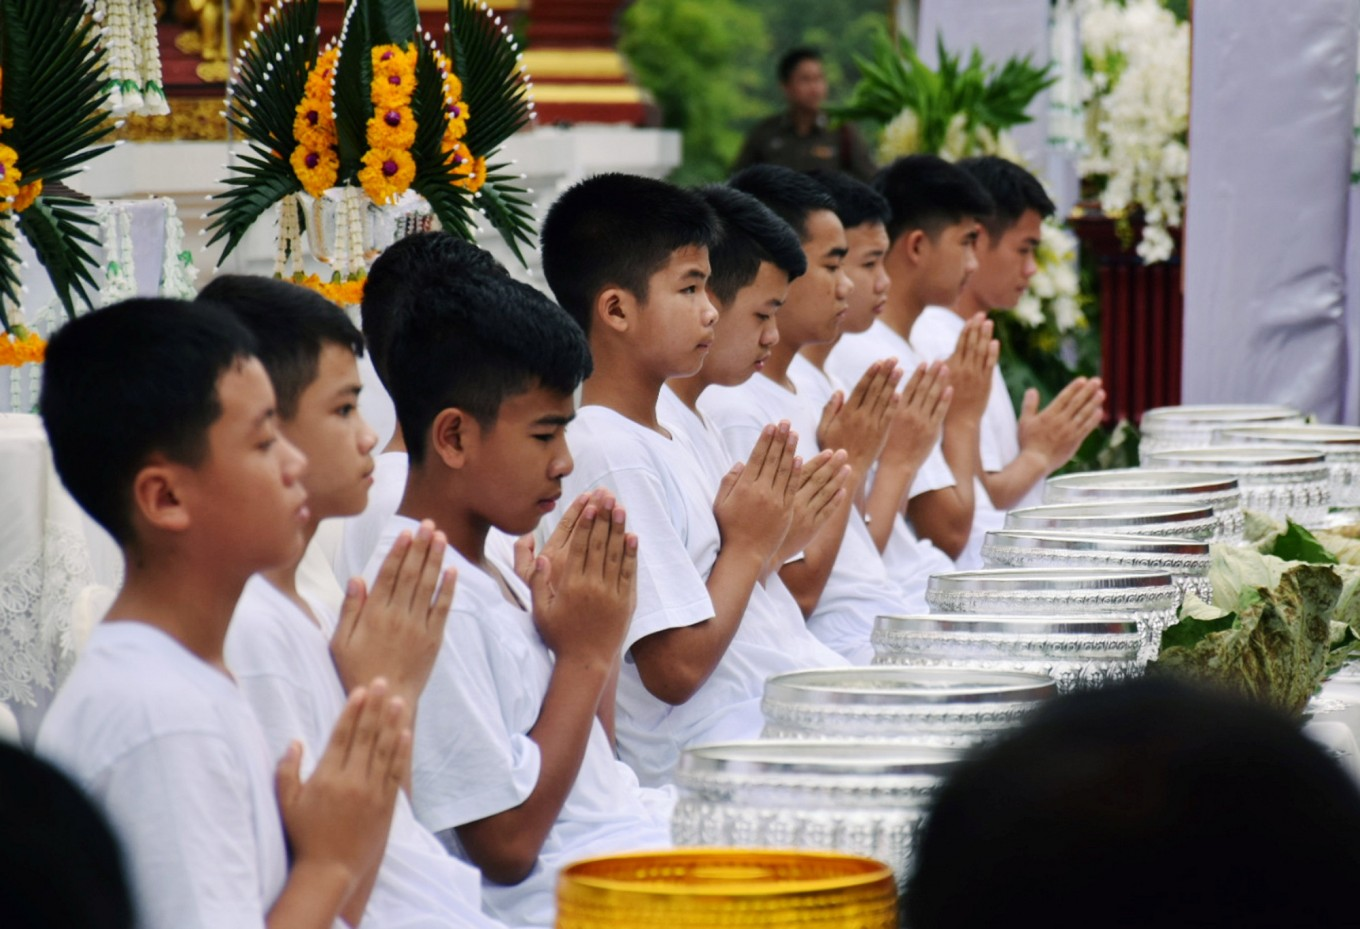 Thai cave boys begin ceremony to become Buddhist novices